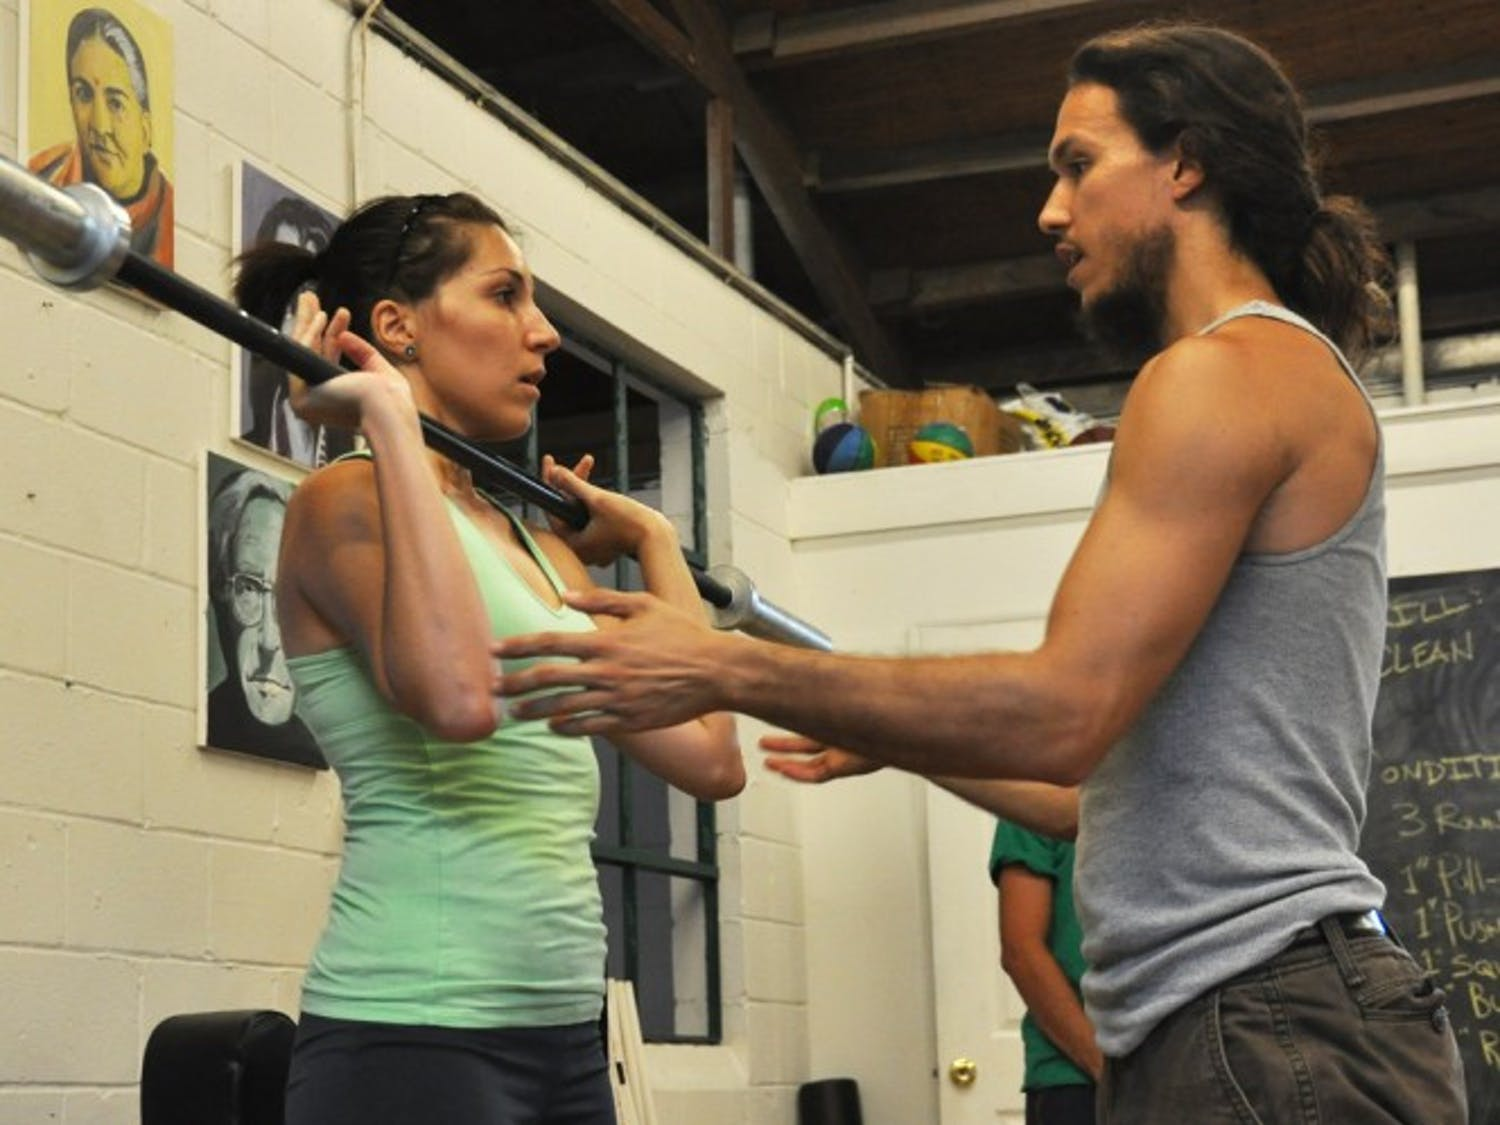 Maria Trujillo, a 25-year-old UF alumna, takes instruction from Michael Espinosa, a 27-year-old UF alumnus and founder of The Ark School of Fitness, 22 NE 11 St. The Ark gym is a nonprofit facility.